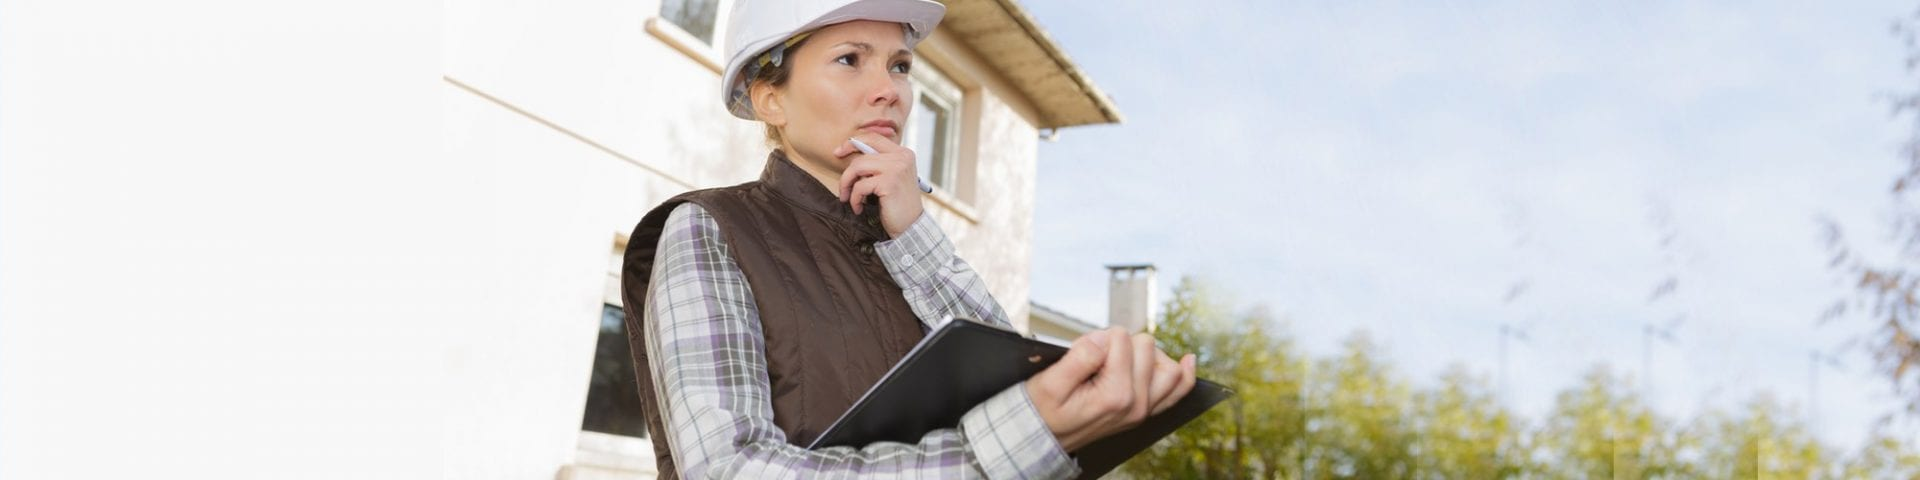 Construction Site Safety Inspections – Is a Checklist Sufficient?